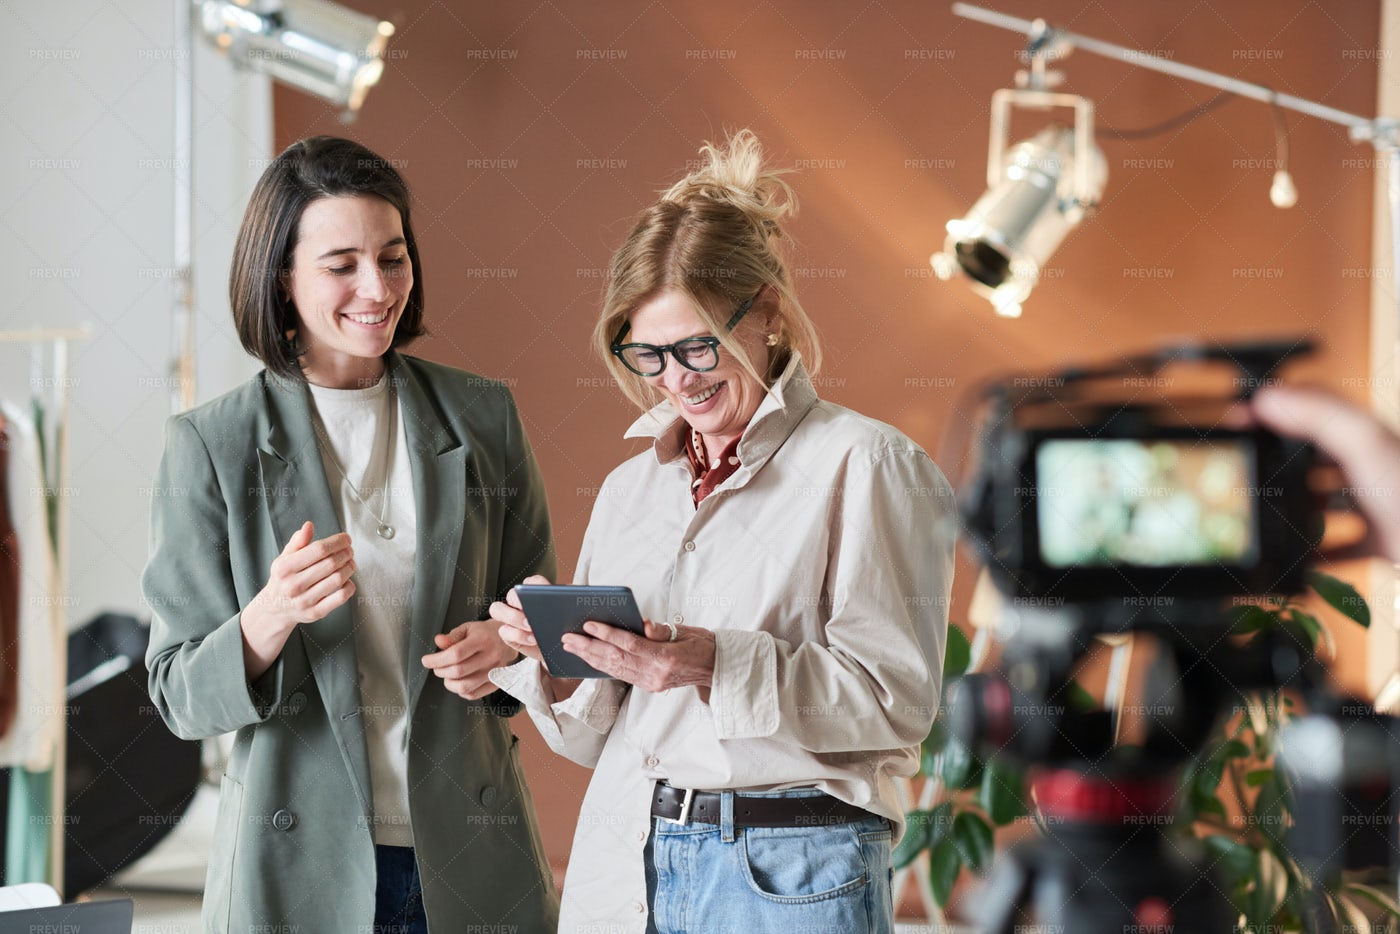 Businesswomen Being Photographed: Stock Photos